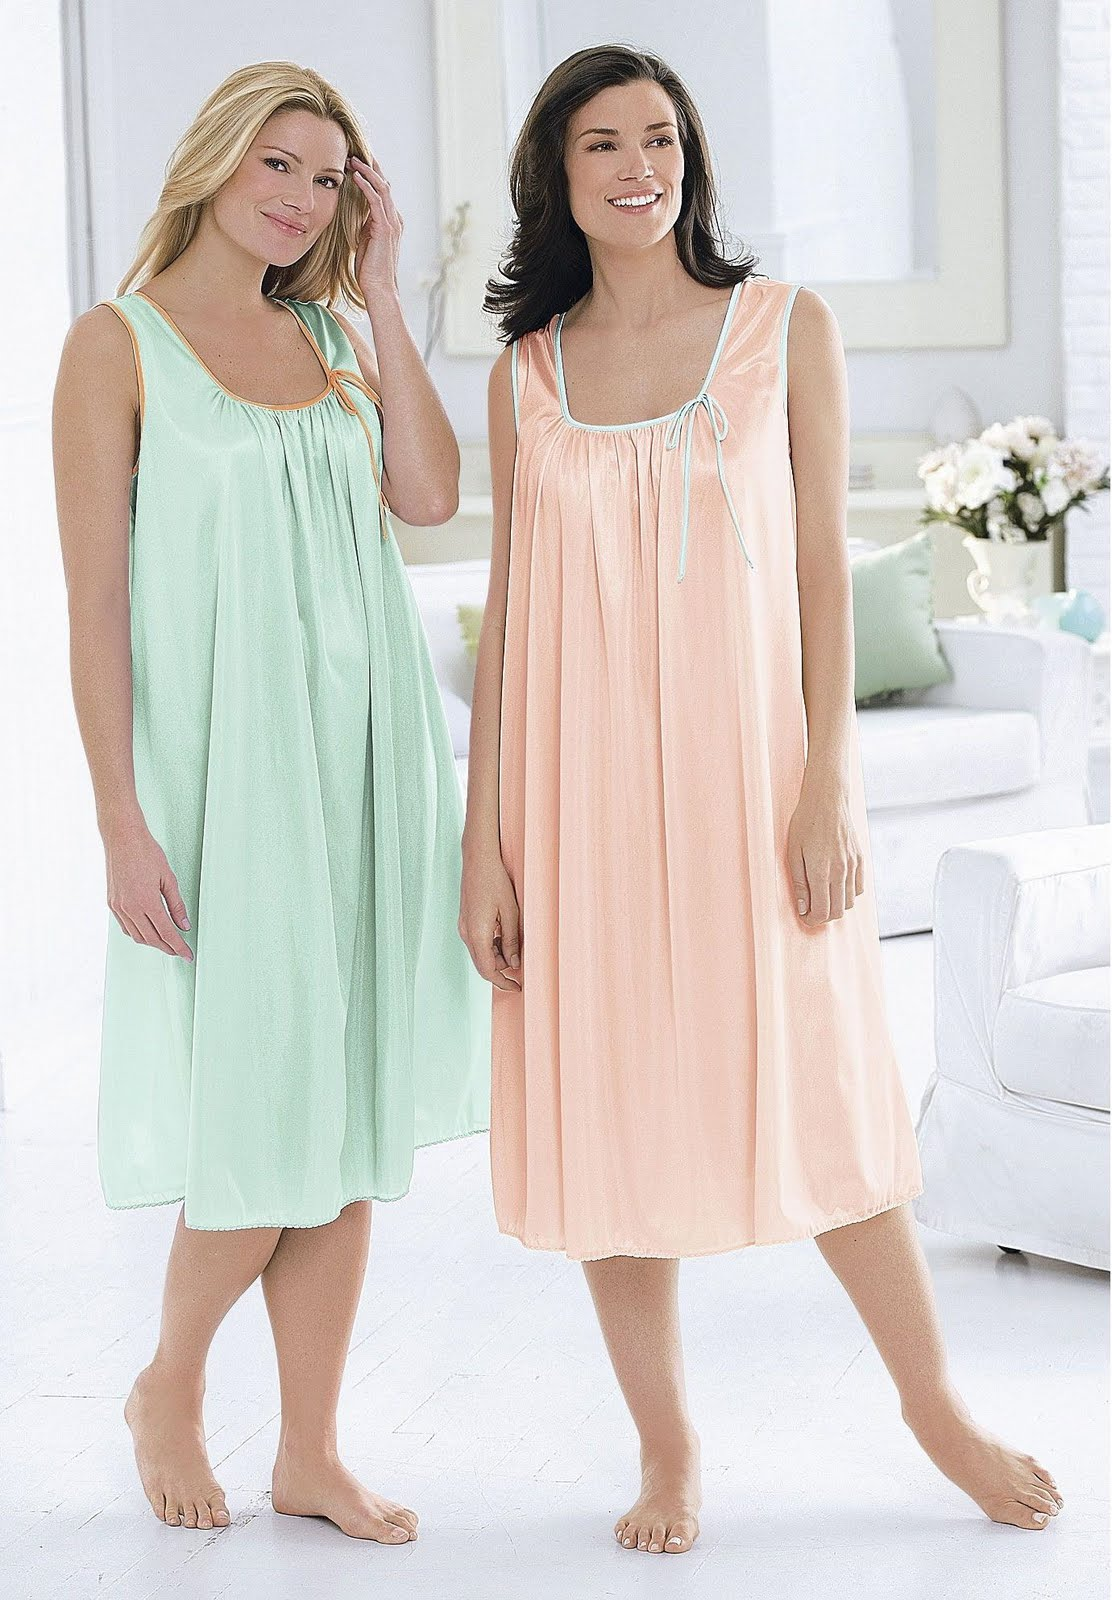 Formal Dresses, Prom Dresses, and Evening Dresses: Plus Size Night Gowns